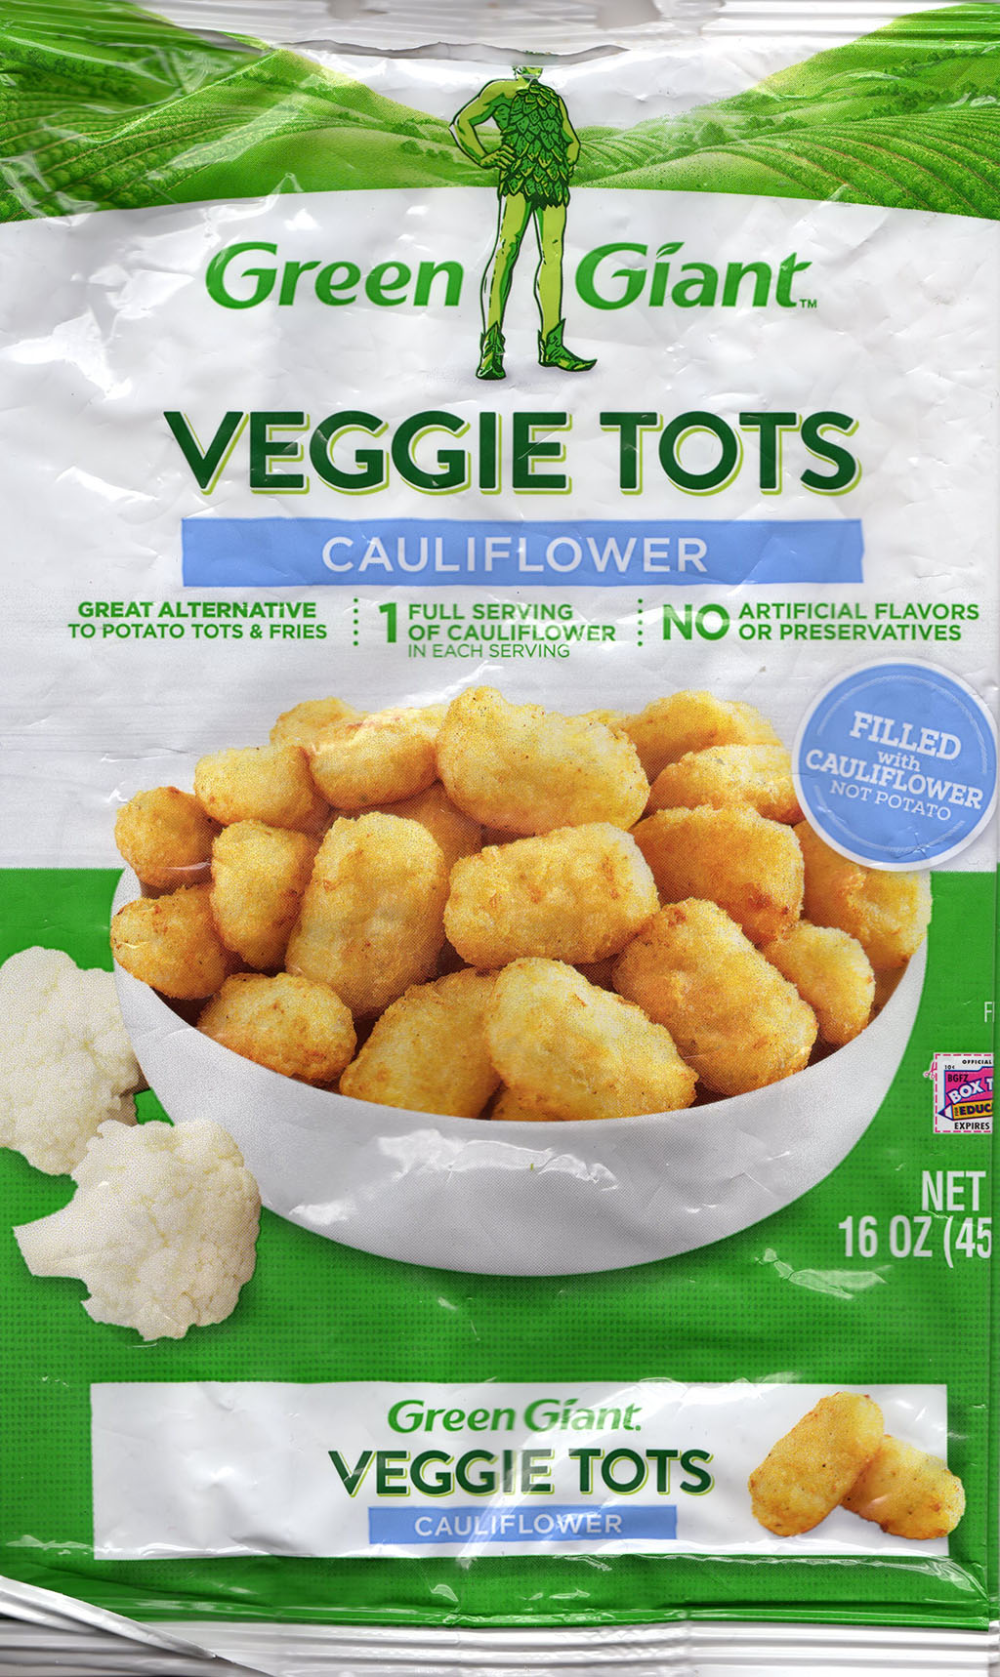 How to make Green Giant cauliflower tots in an air fryer